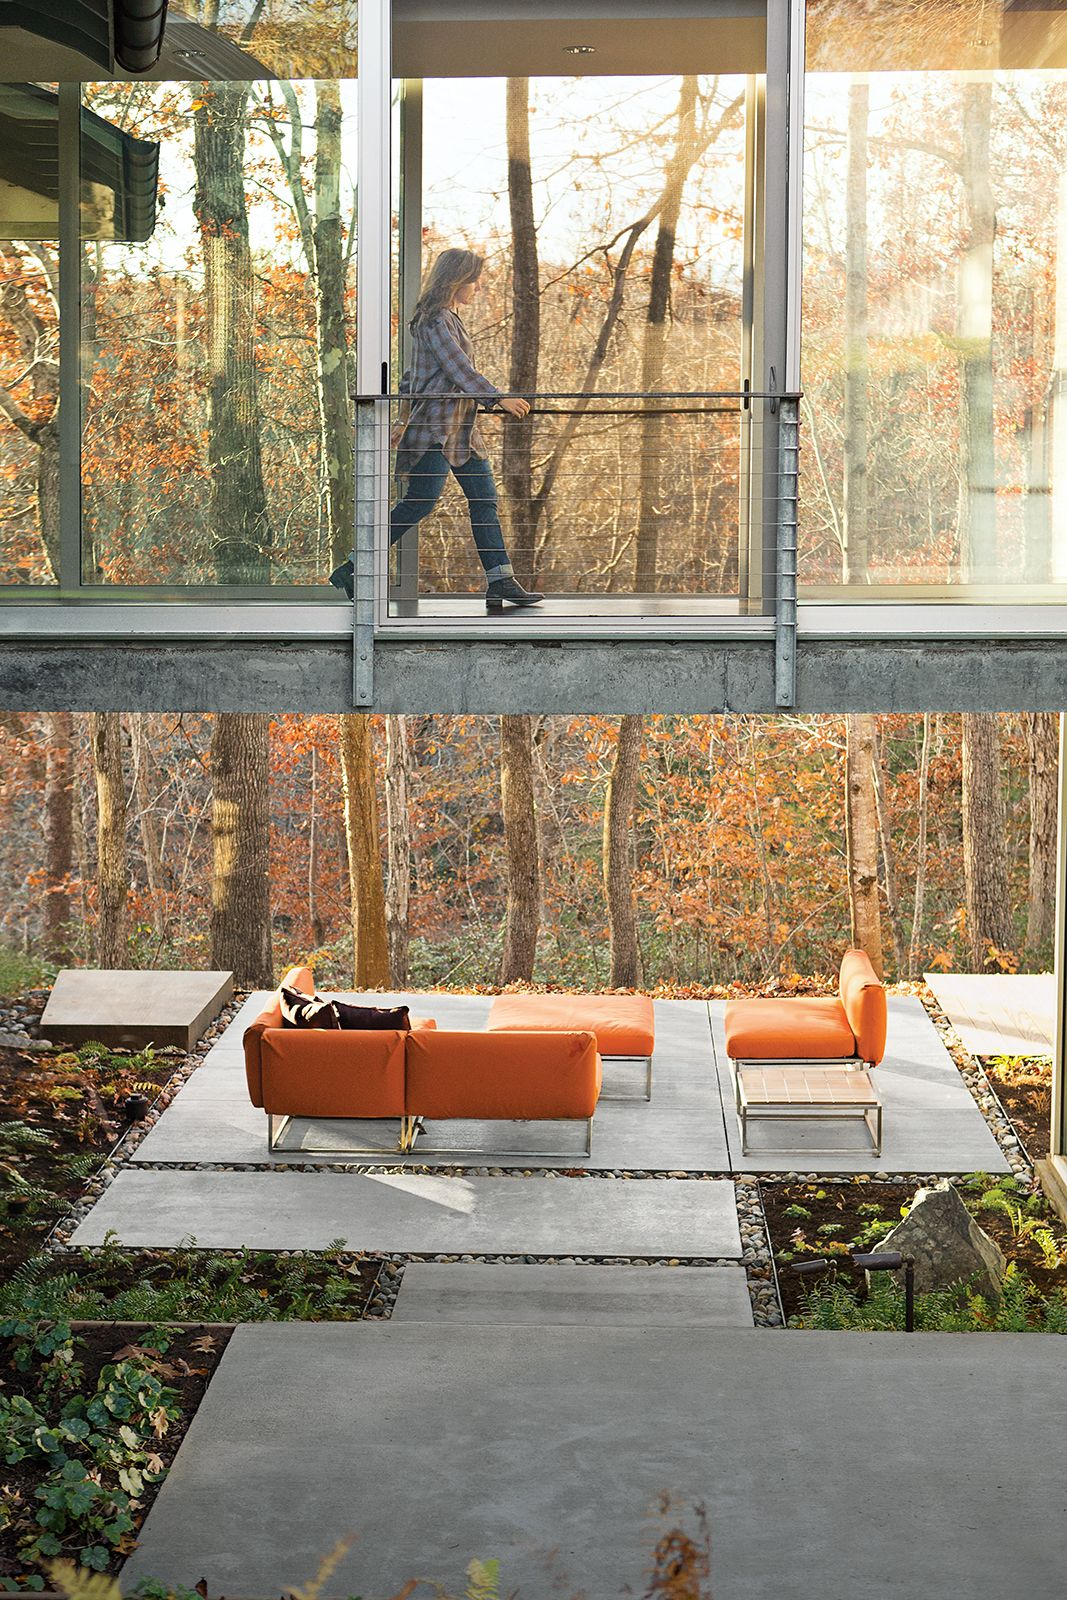 A Family-Friendly Landscape Design in Virginia Another backyard hot spot is the deck, built around an existing boulder, where adults can lounge while the kids climb.